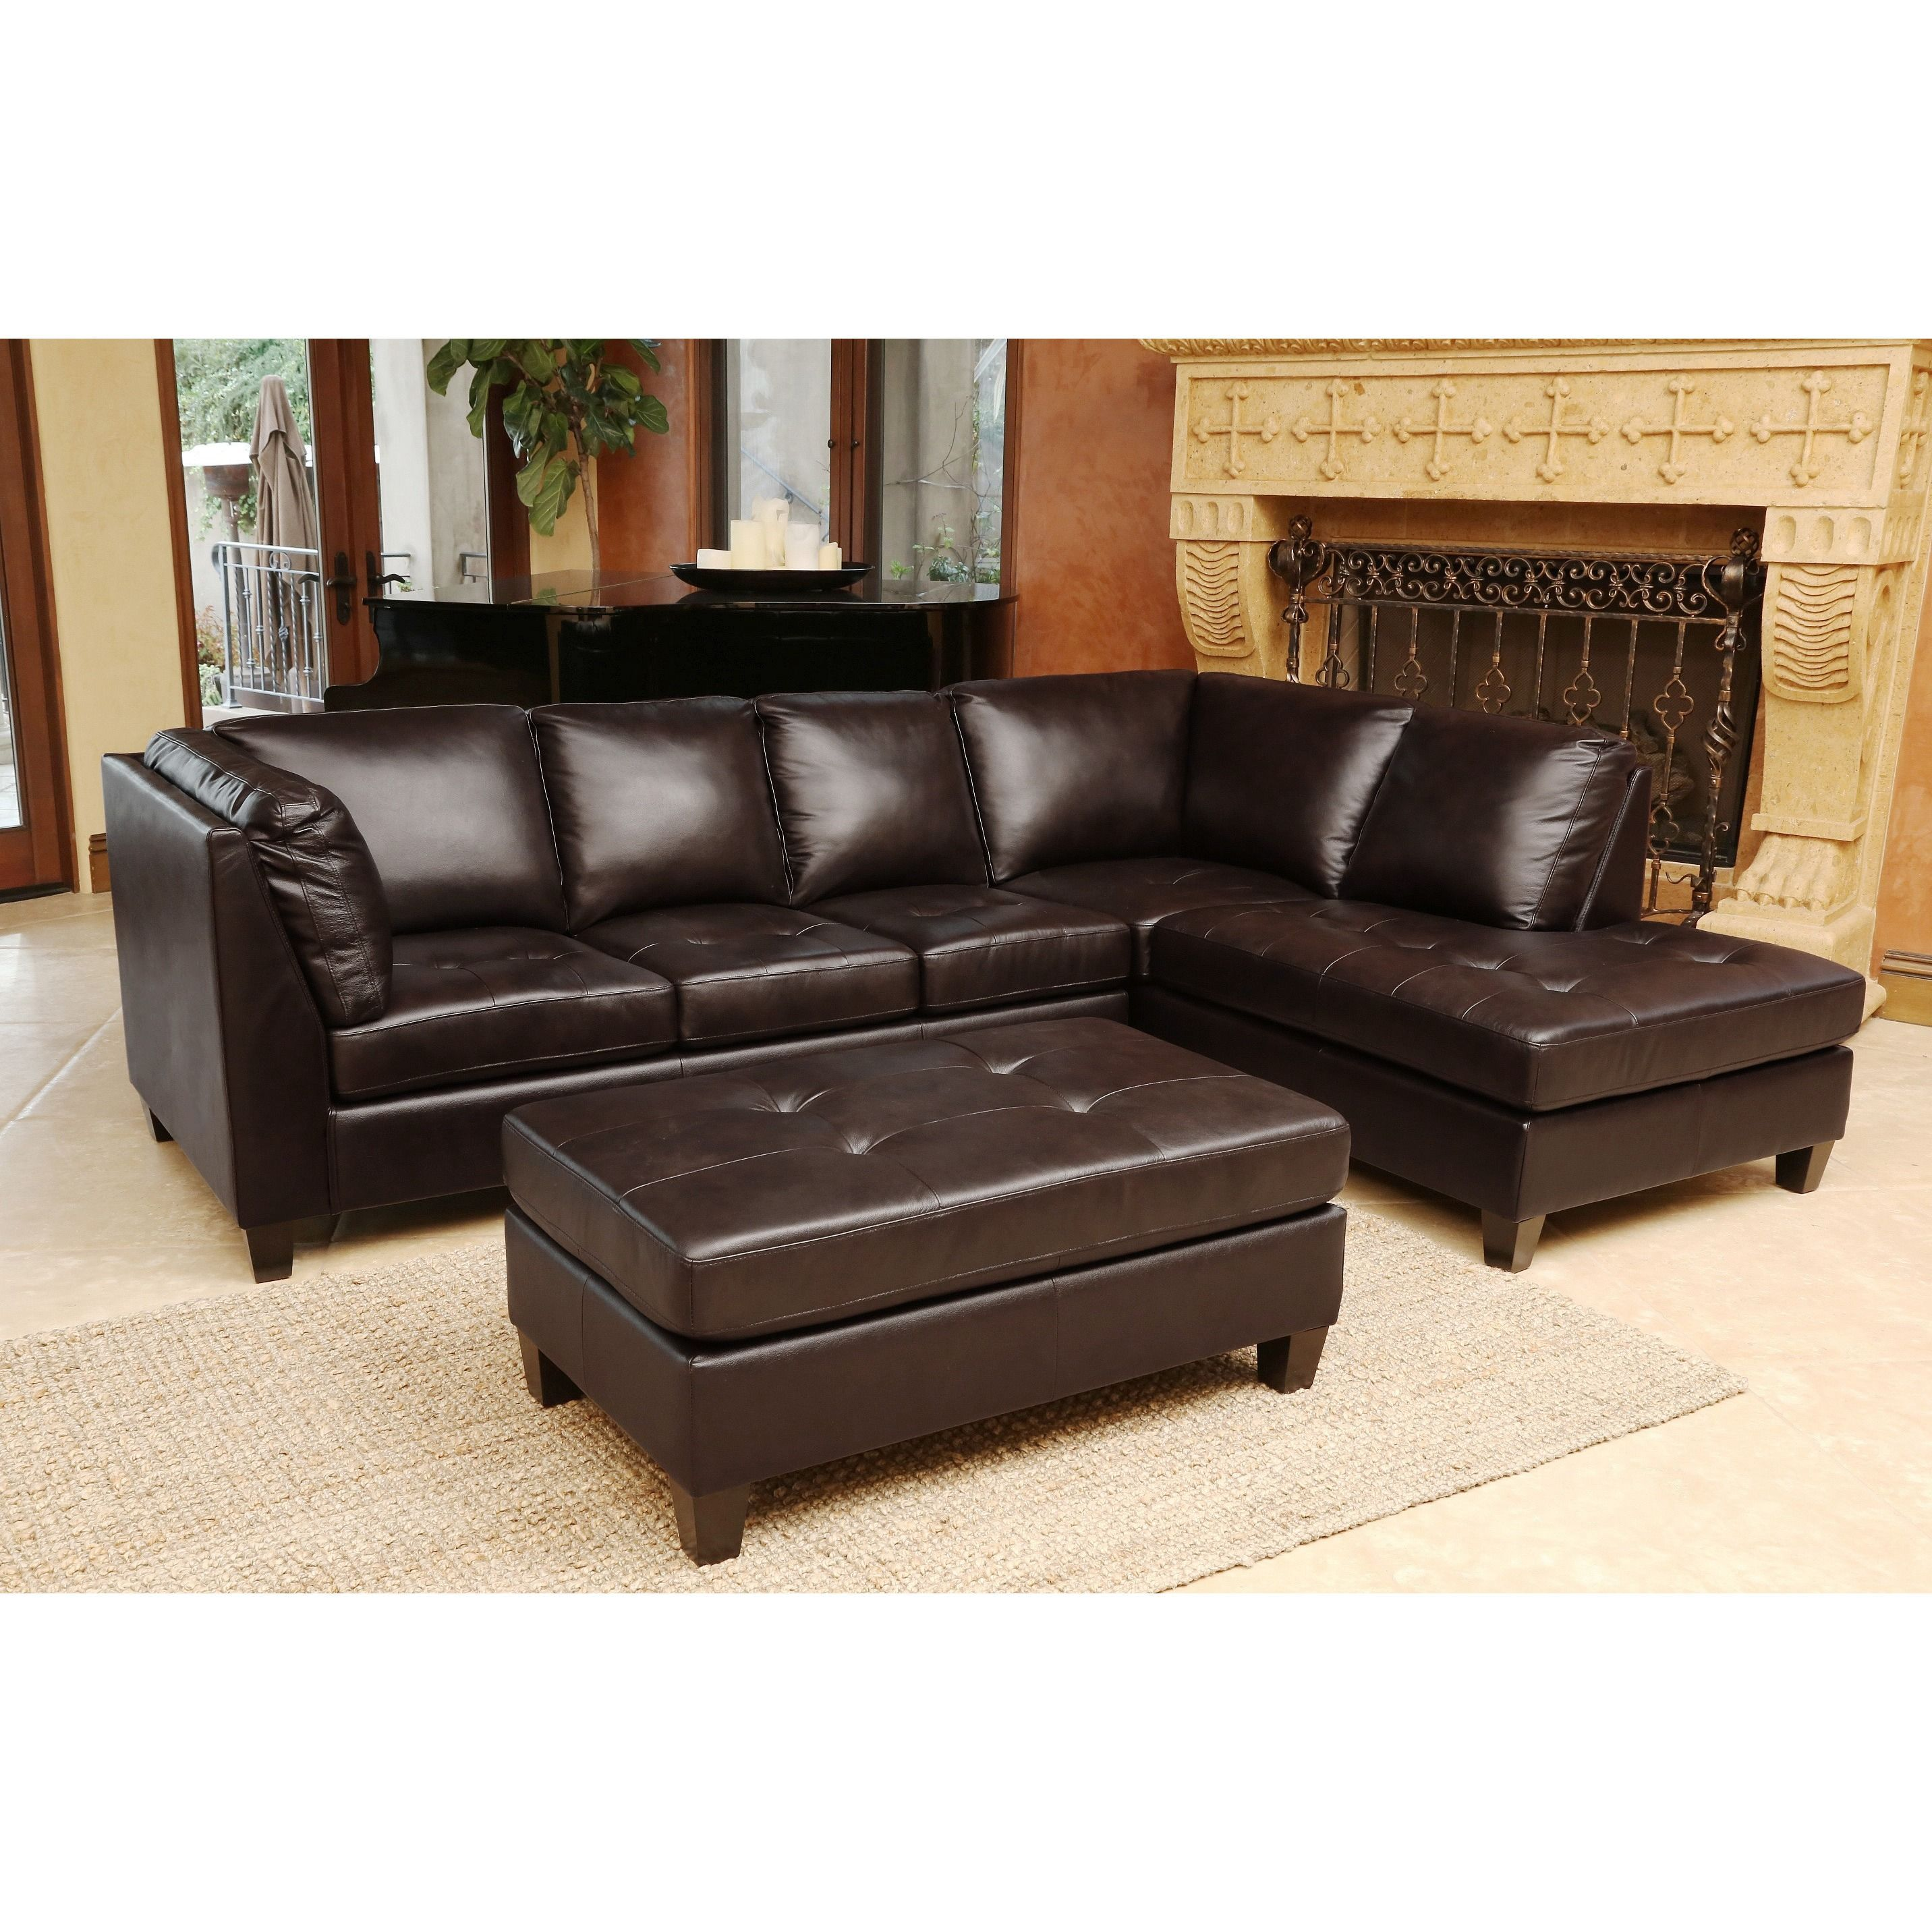 Online Shopping Bedding Furniture Electronics Jewelry Clothing More Leather Sectional Leather Furniture Furniture